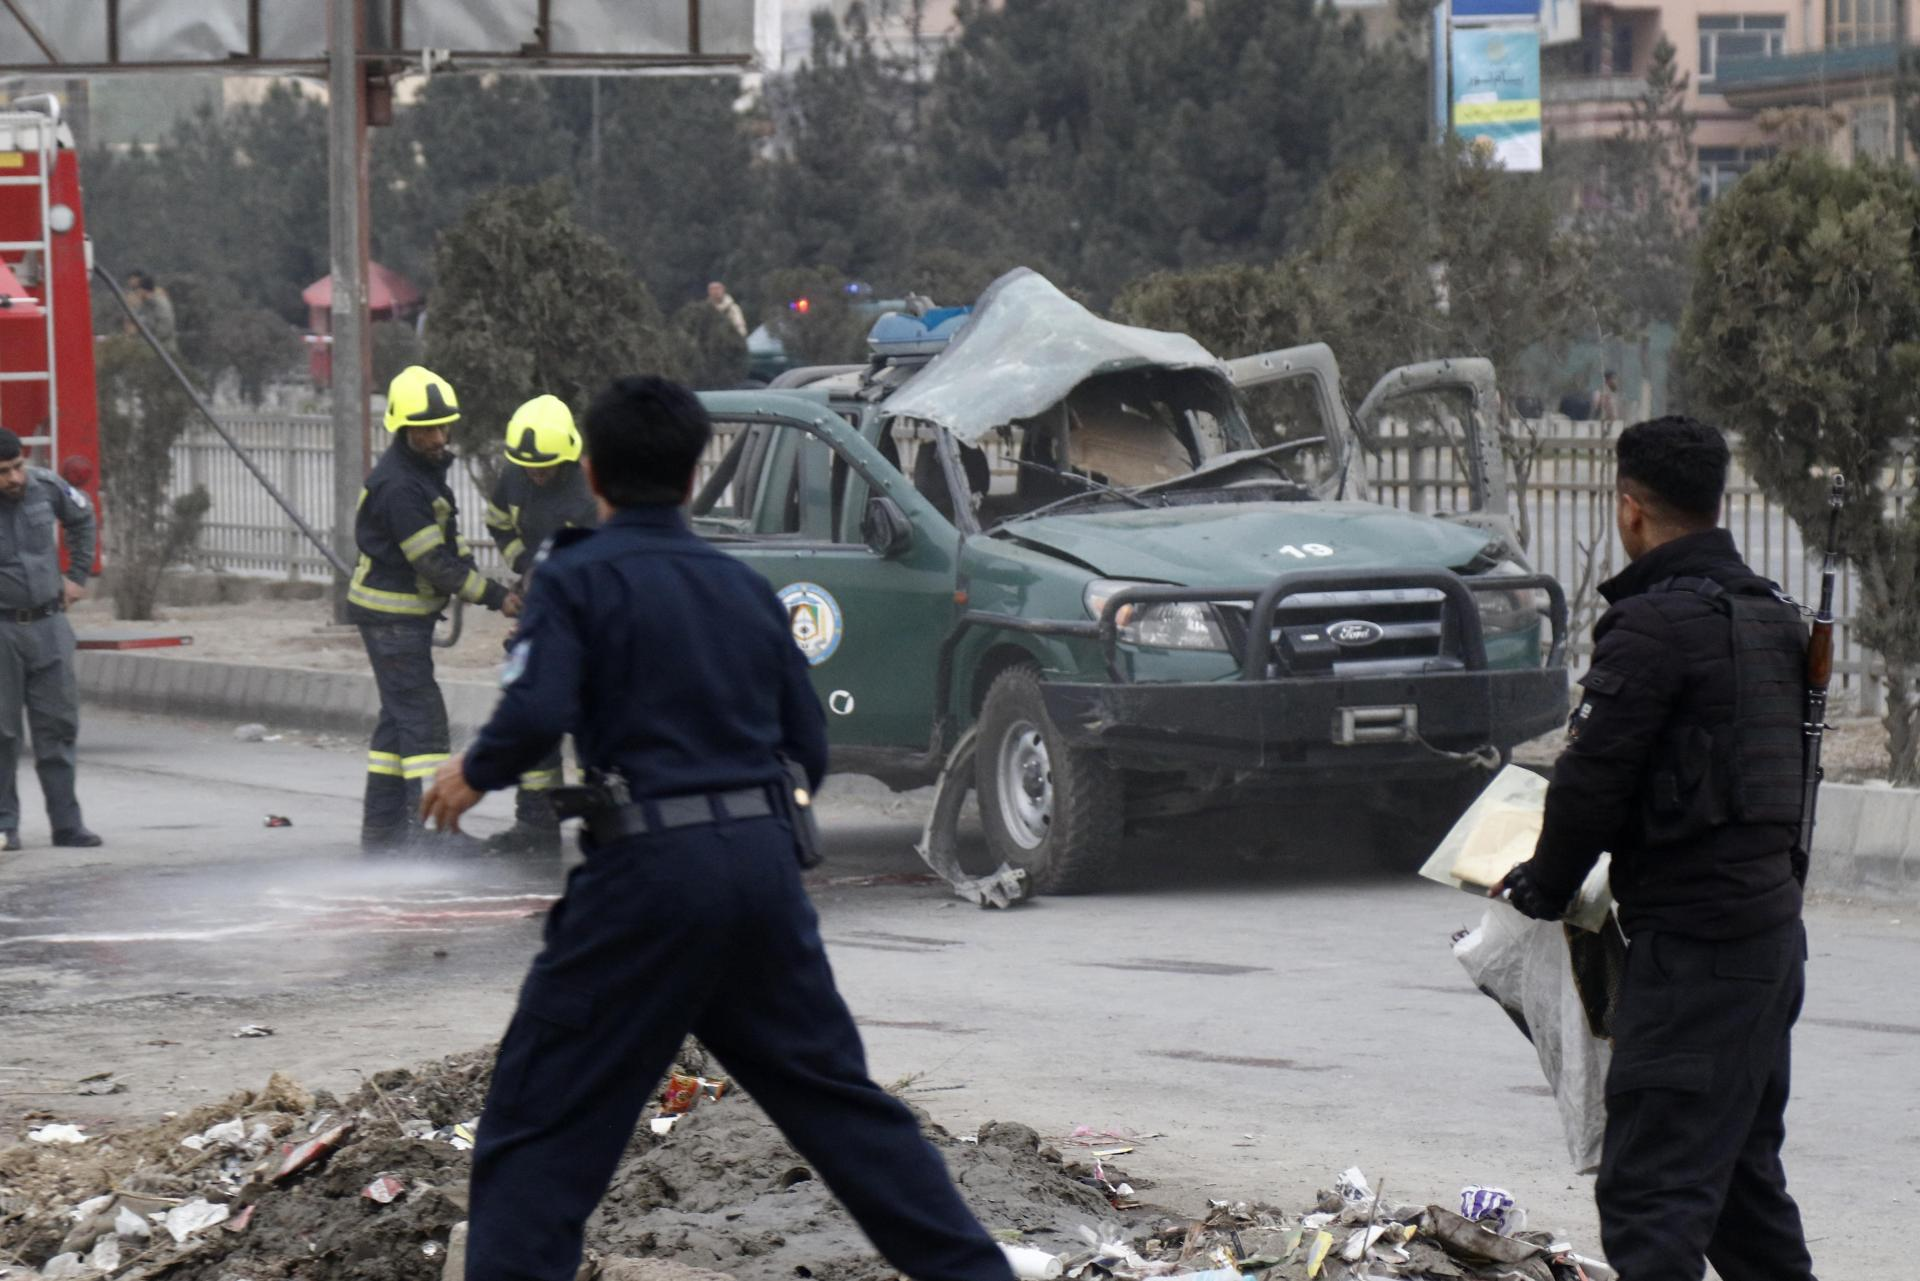 Policemen arrive at a site of a bomb blast which killed at least two people and injured five others, in Kabul on February 21, 2021. Photo: AFP